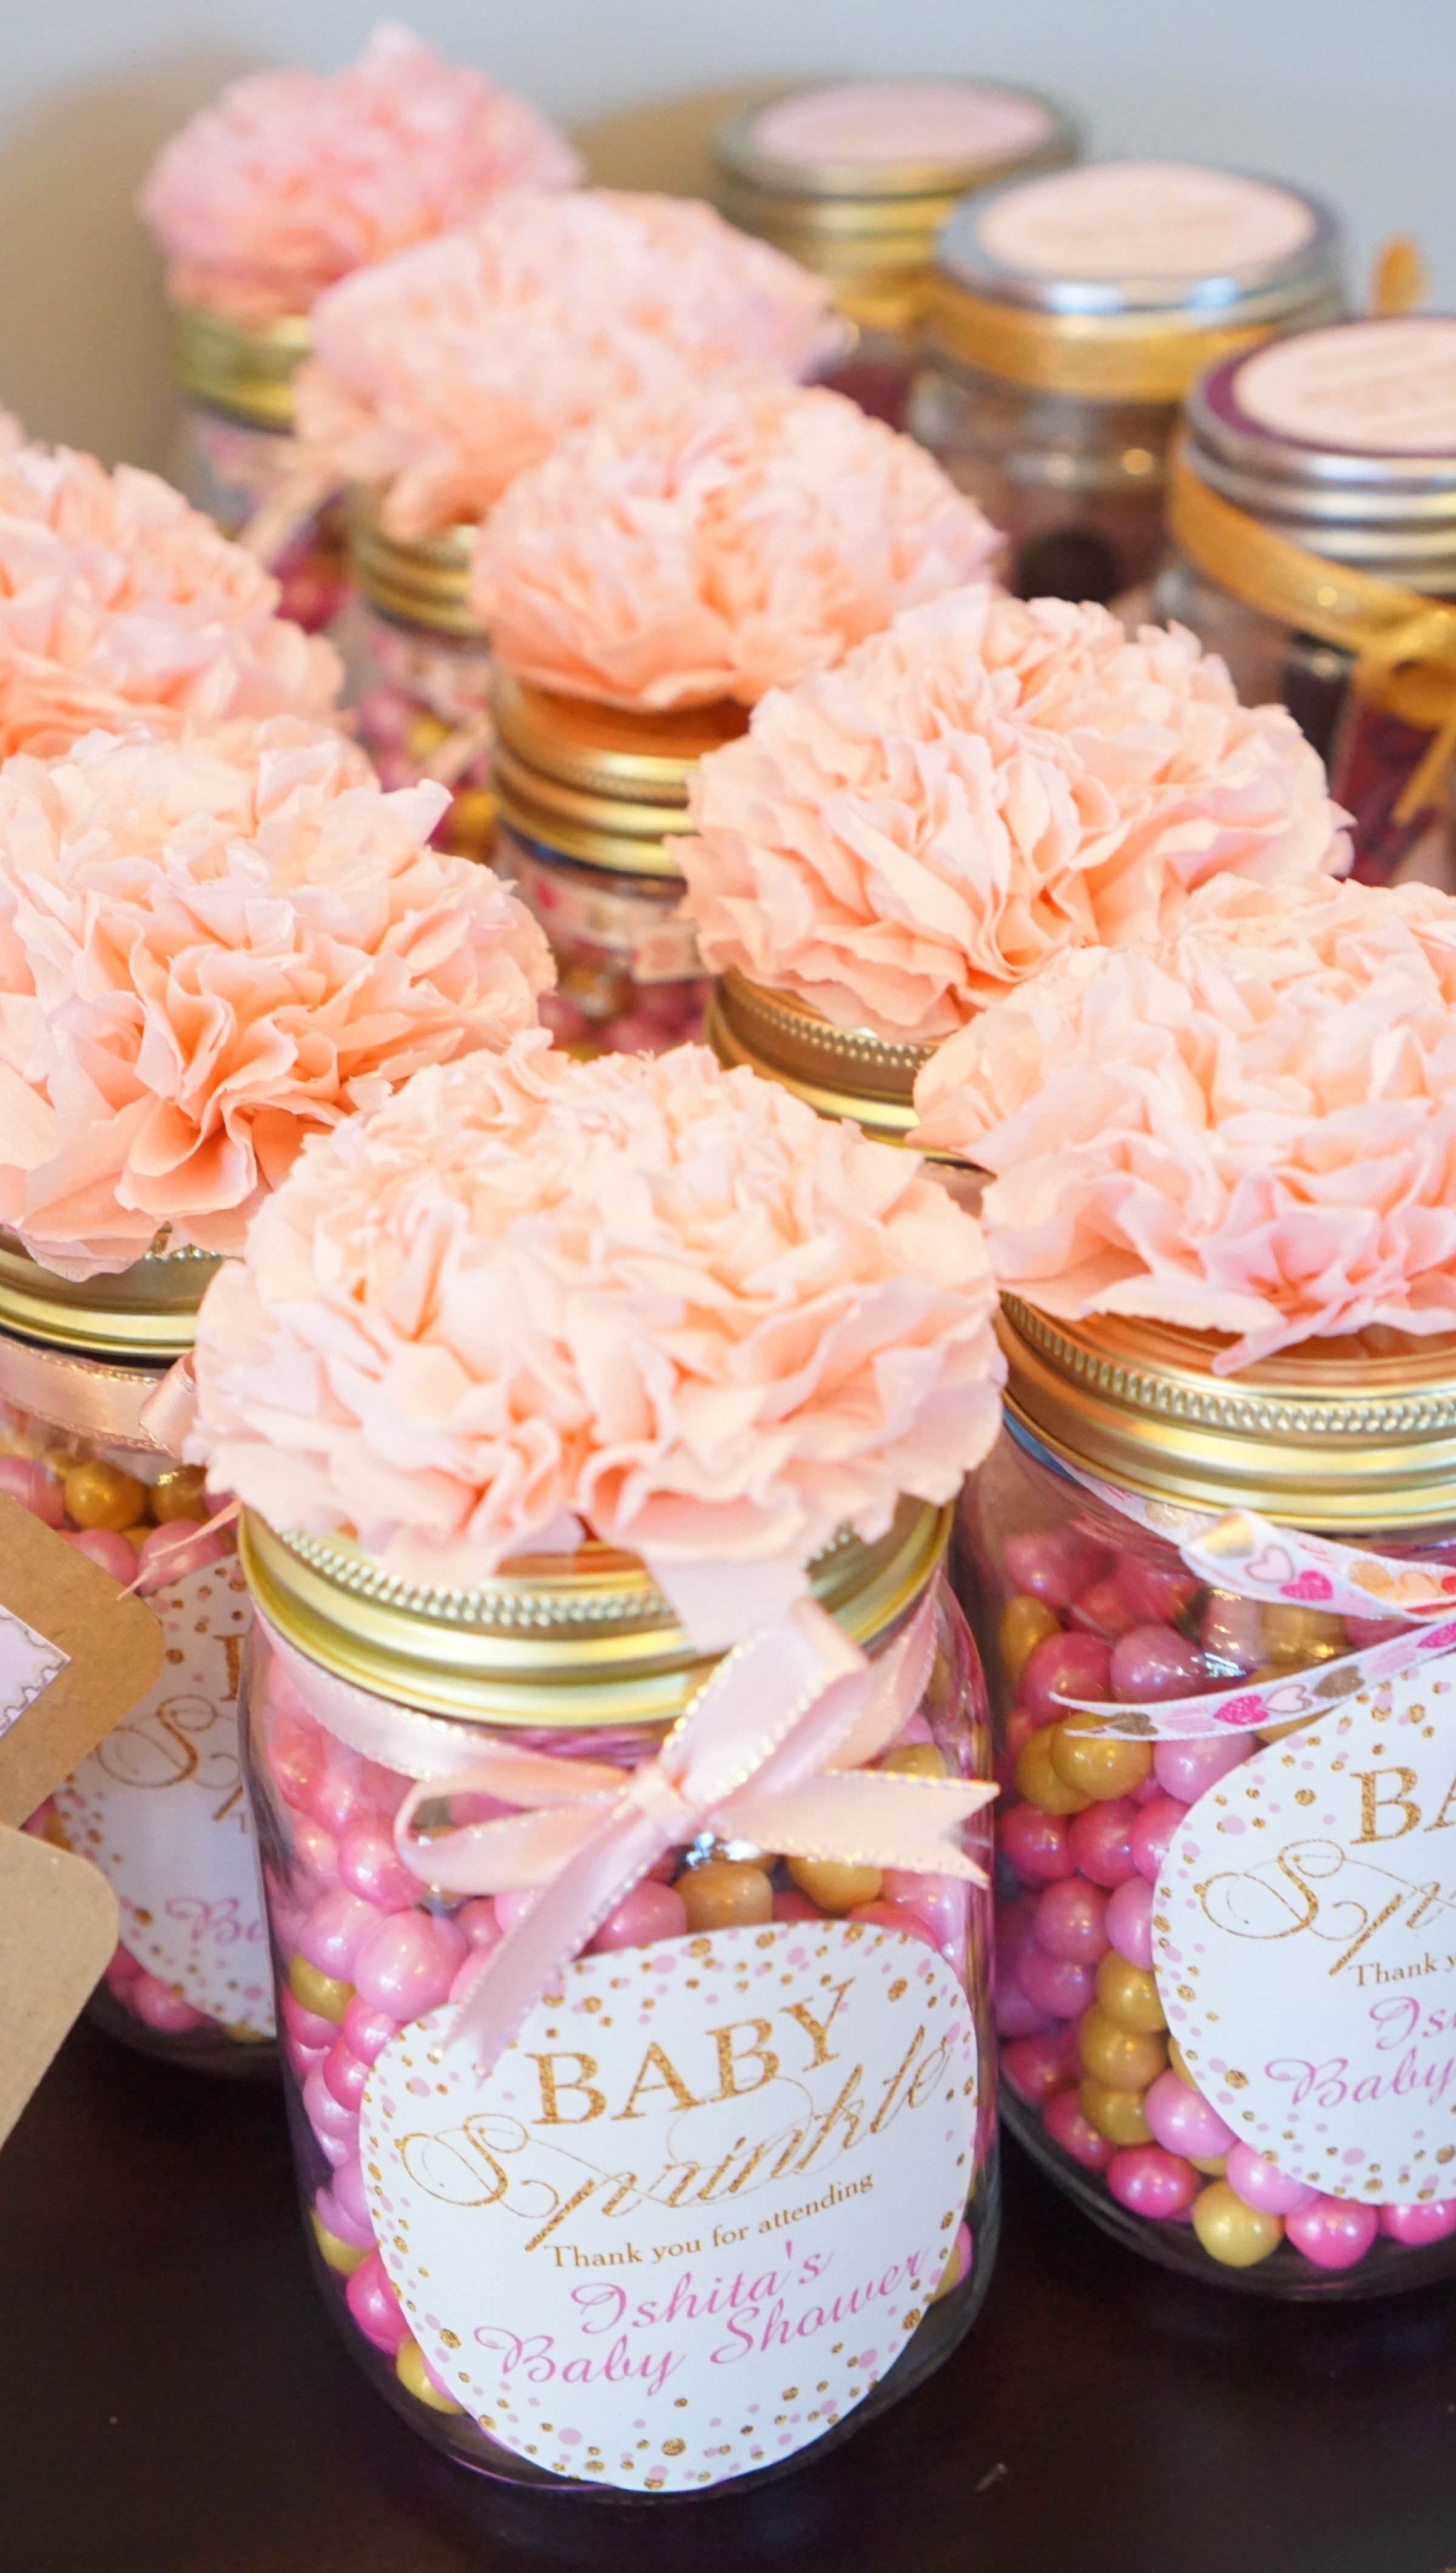 DIY baby shower favor gifts! All you need is mason jars ...